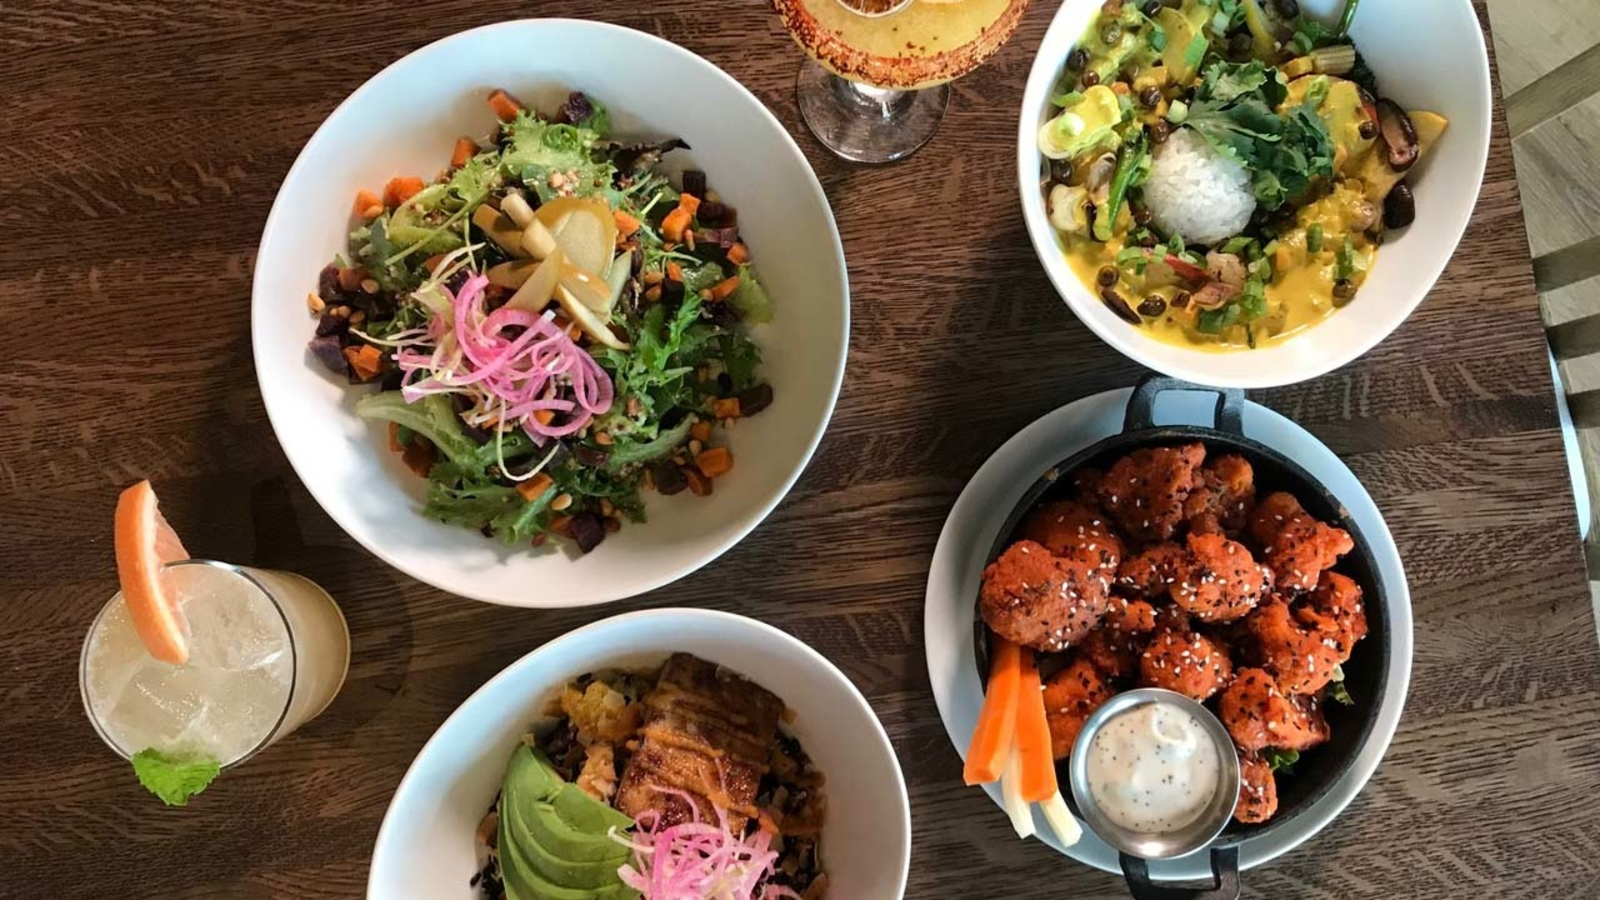 Winnetka restaurant offers plant-based menu where you'll never miss the meat